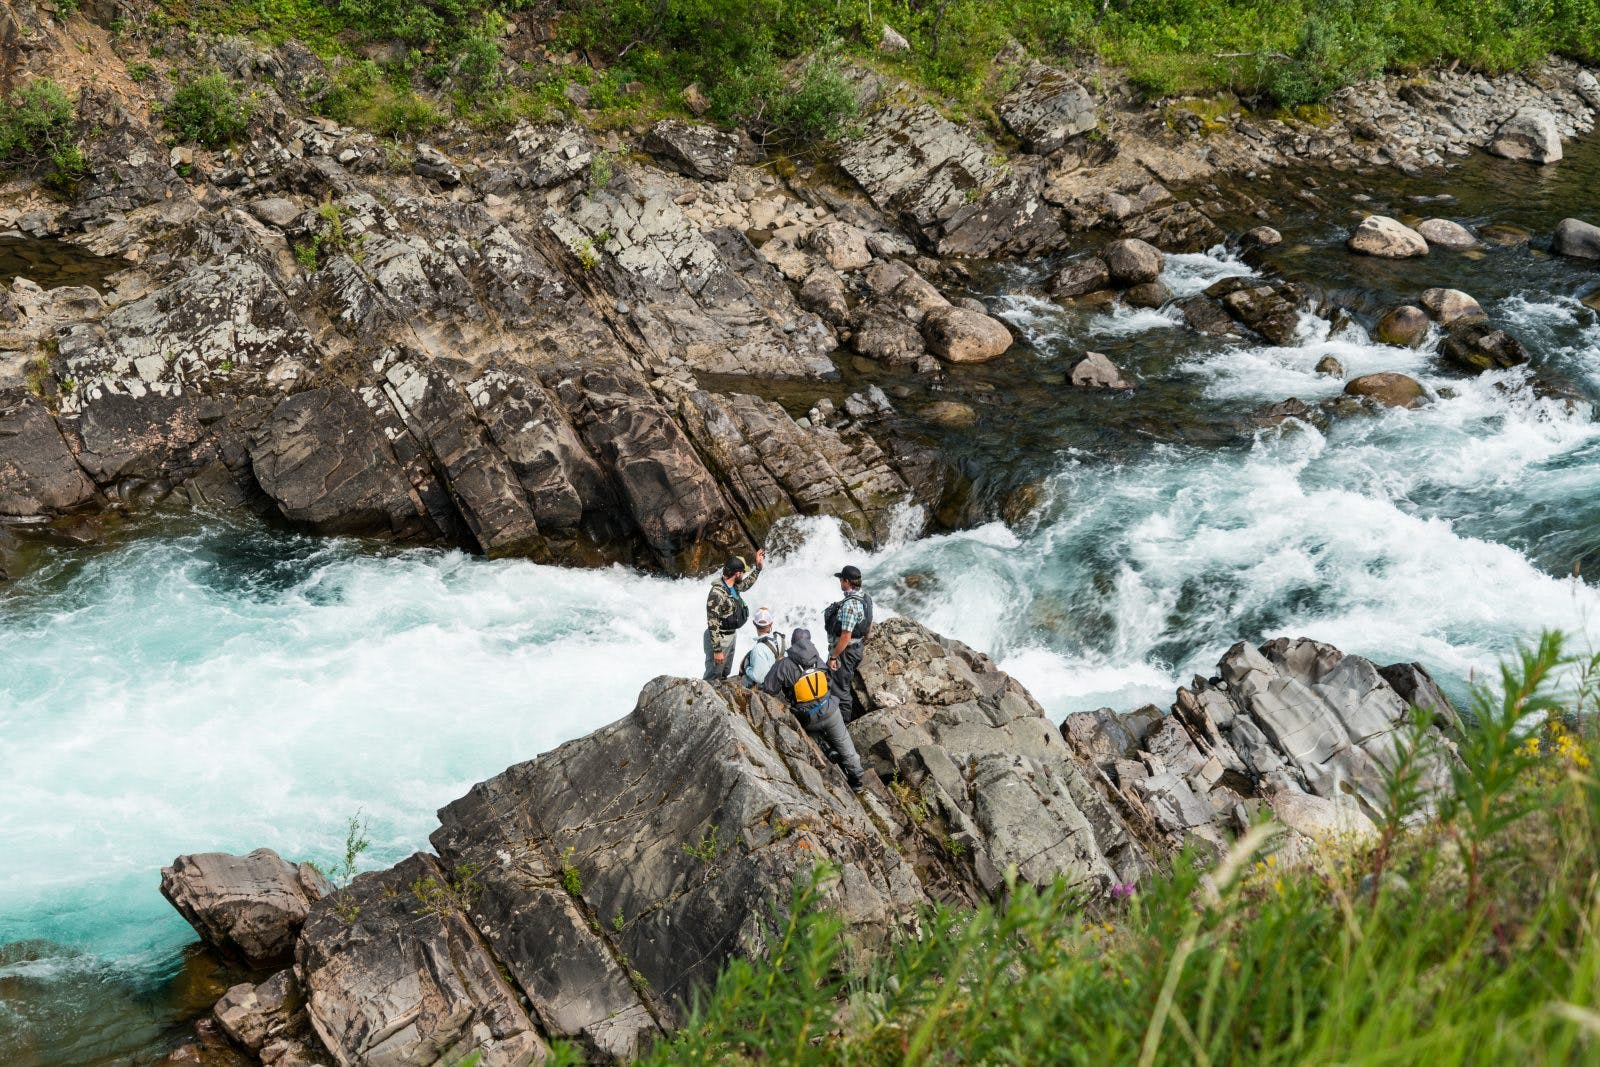 Scouting rapids in Alaska. Photo by Cory Luoma of Fly Out Media.Scouting rapids in Alaska. Photo by Cory Luoma of Fly Out Media.